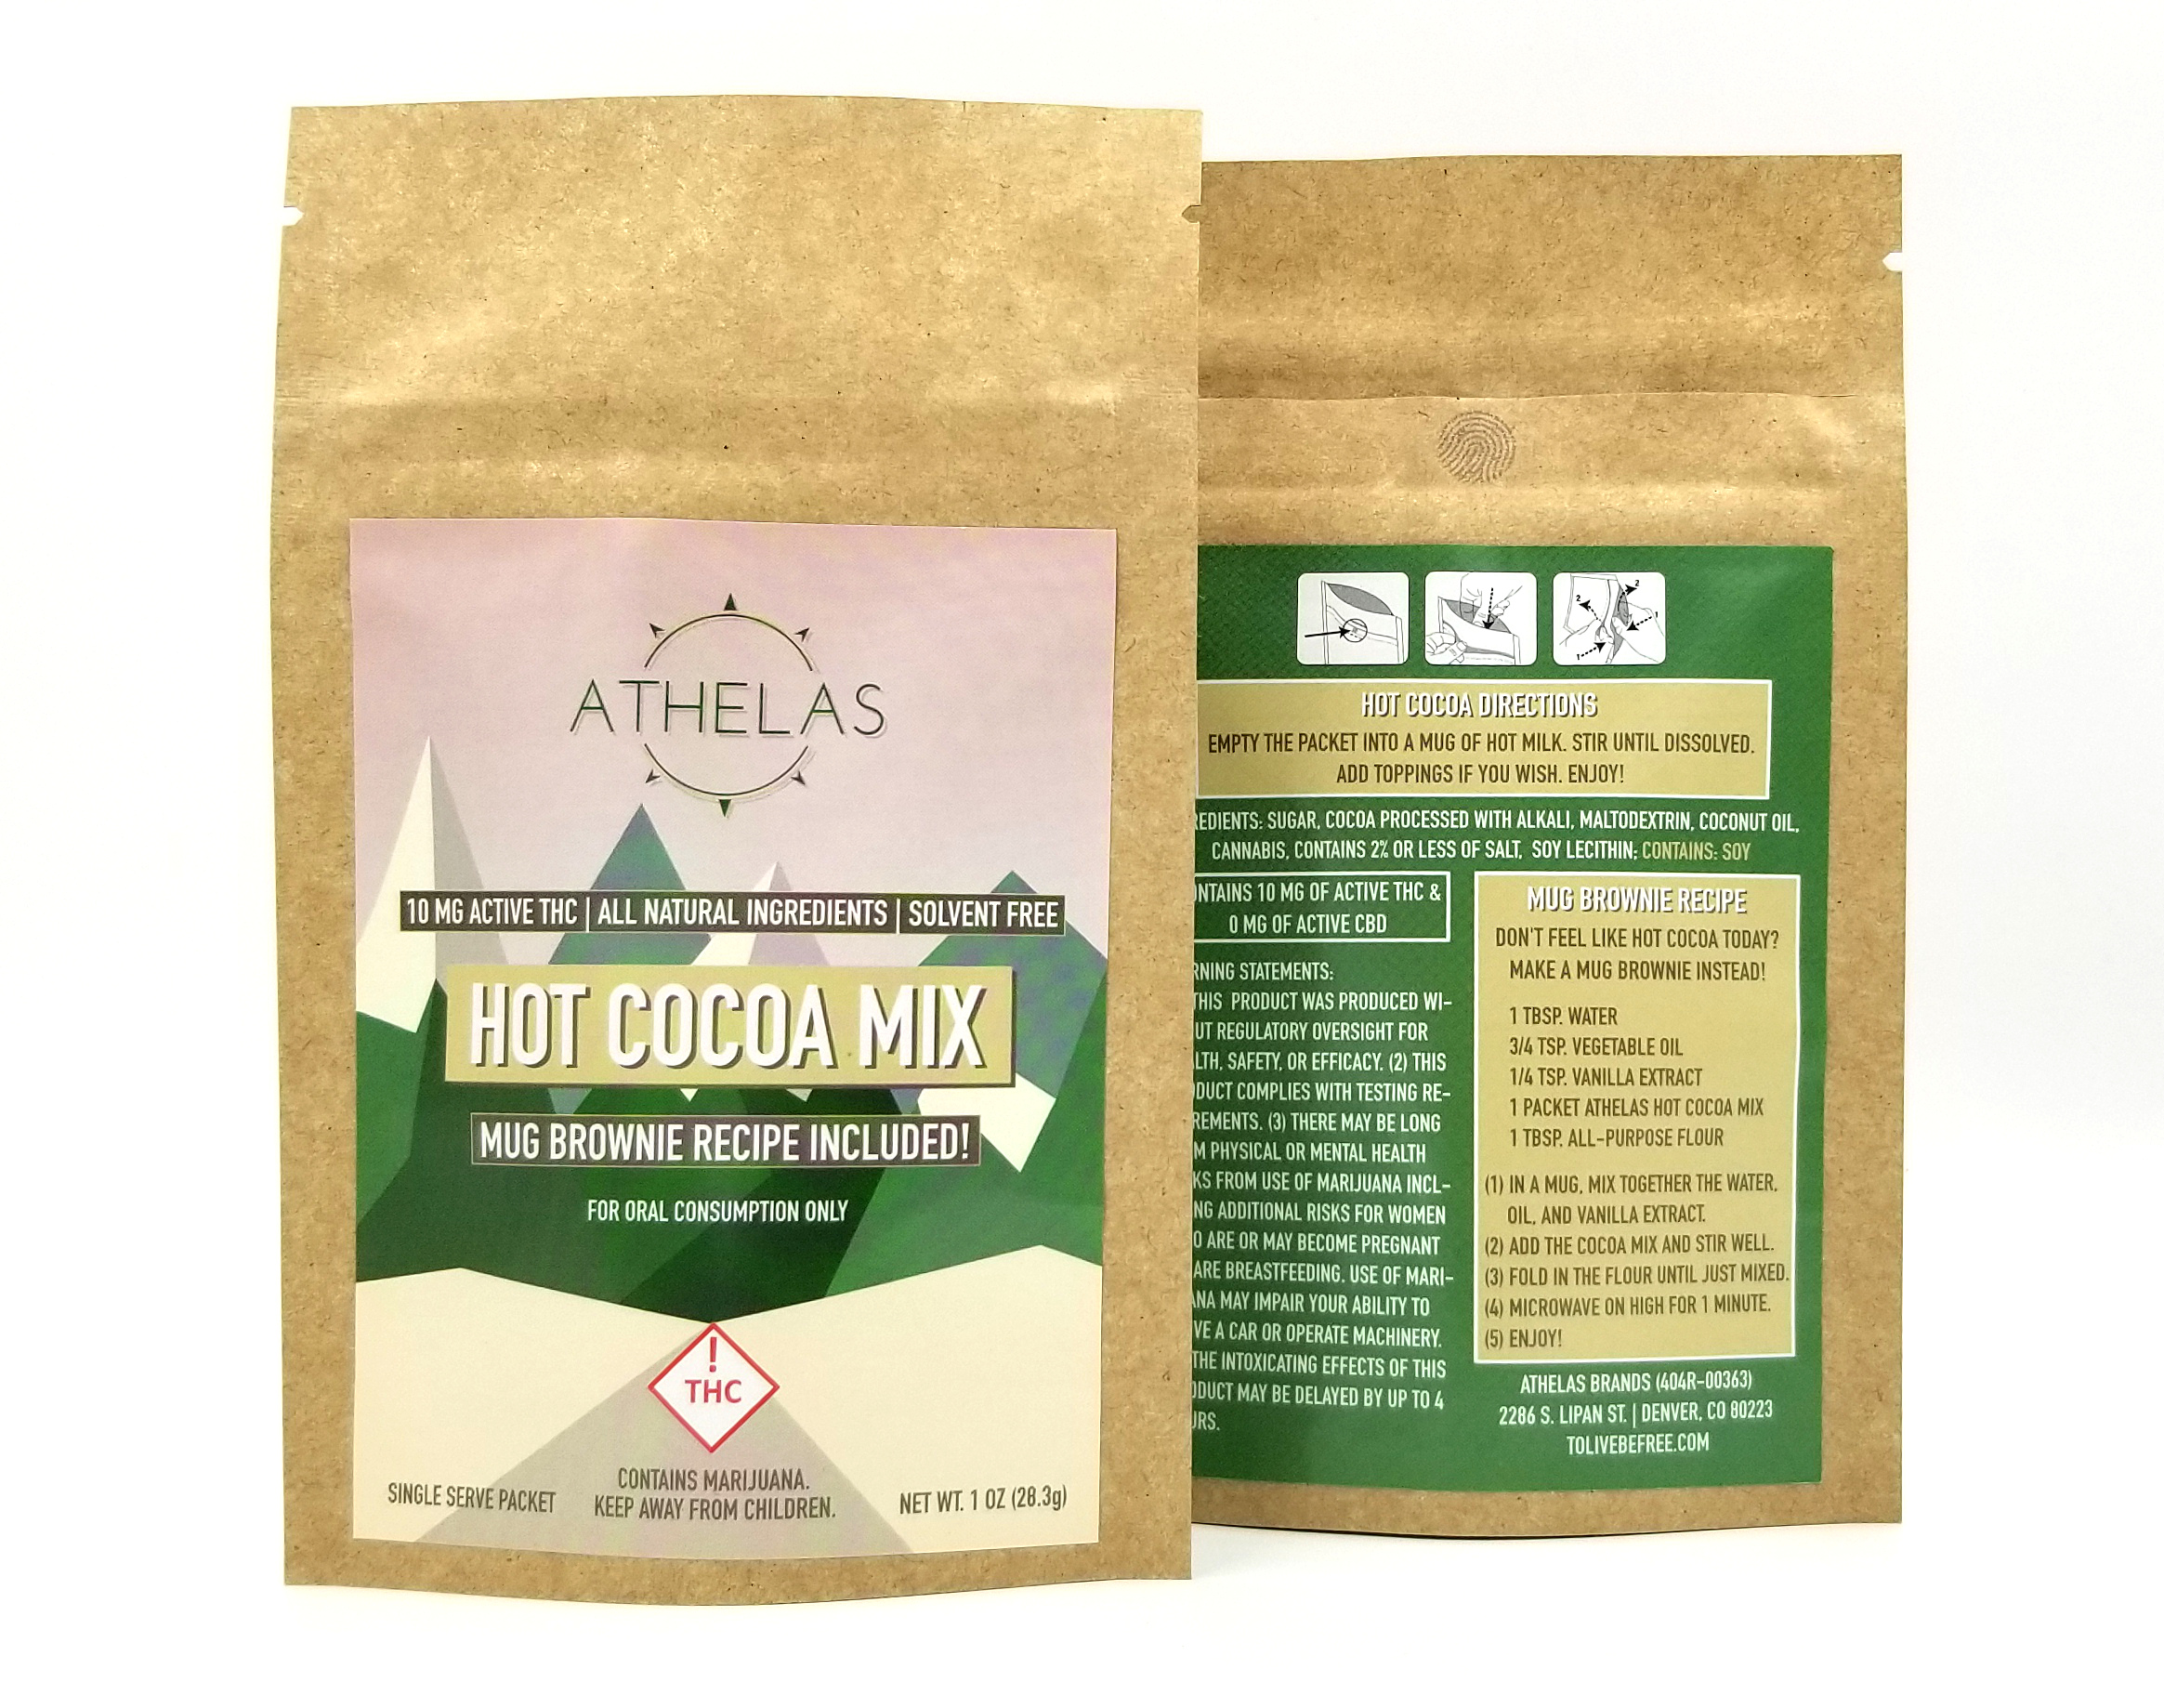 Original Hot Cocoa Mix - 10 mg